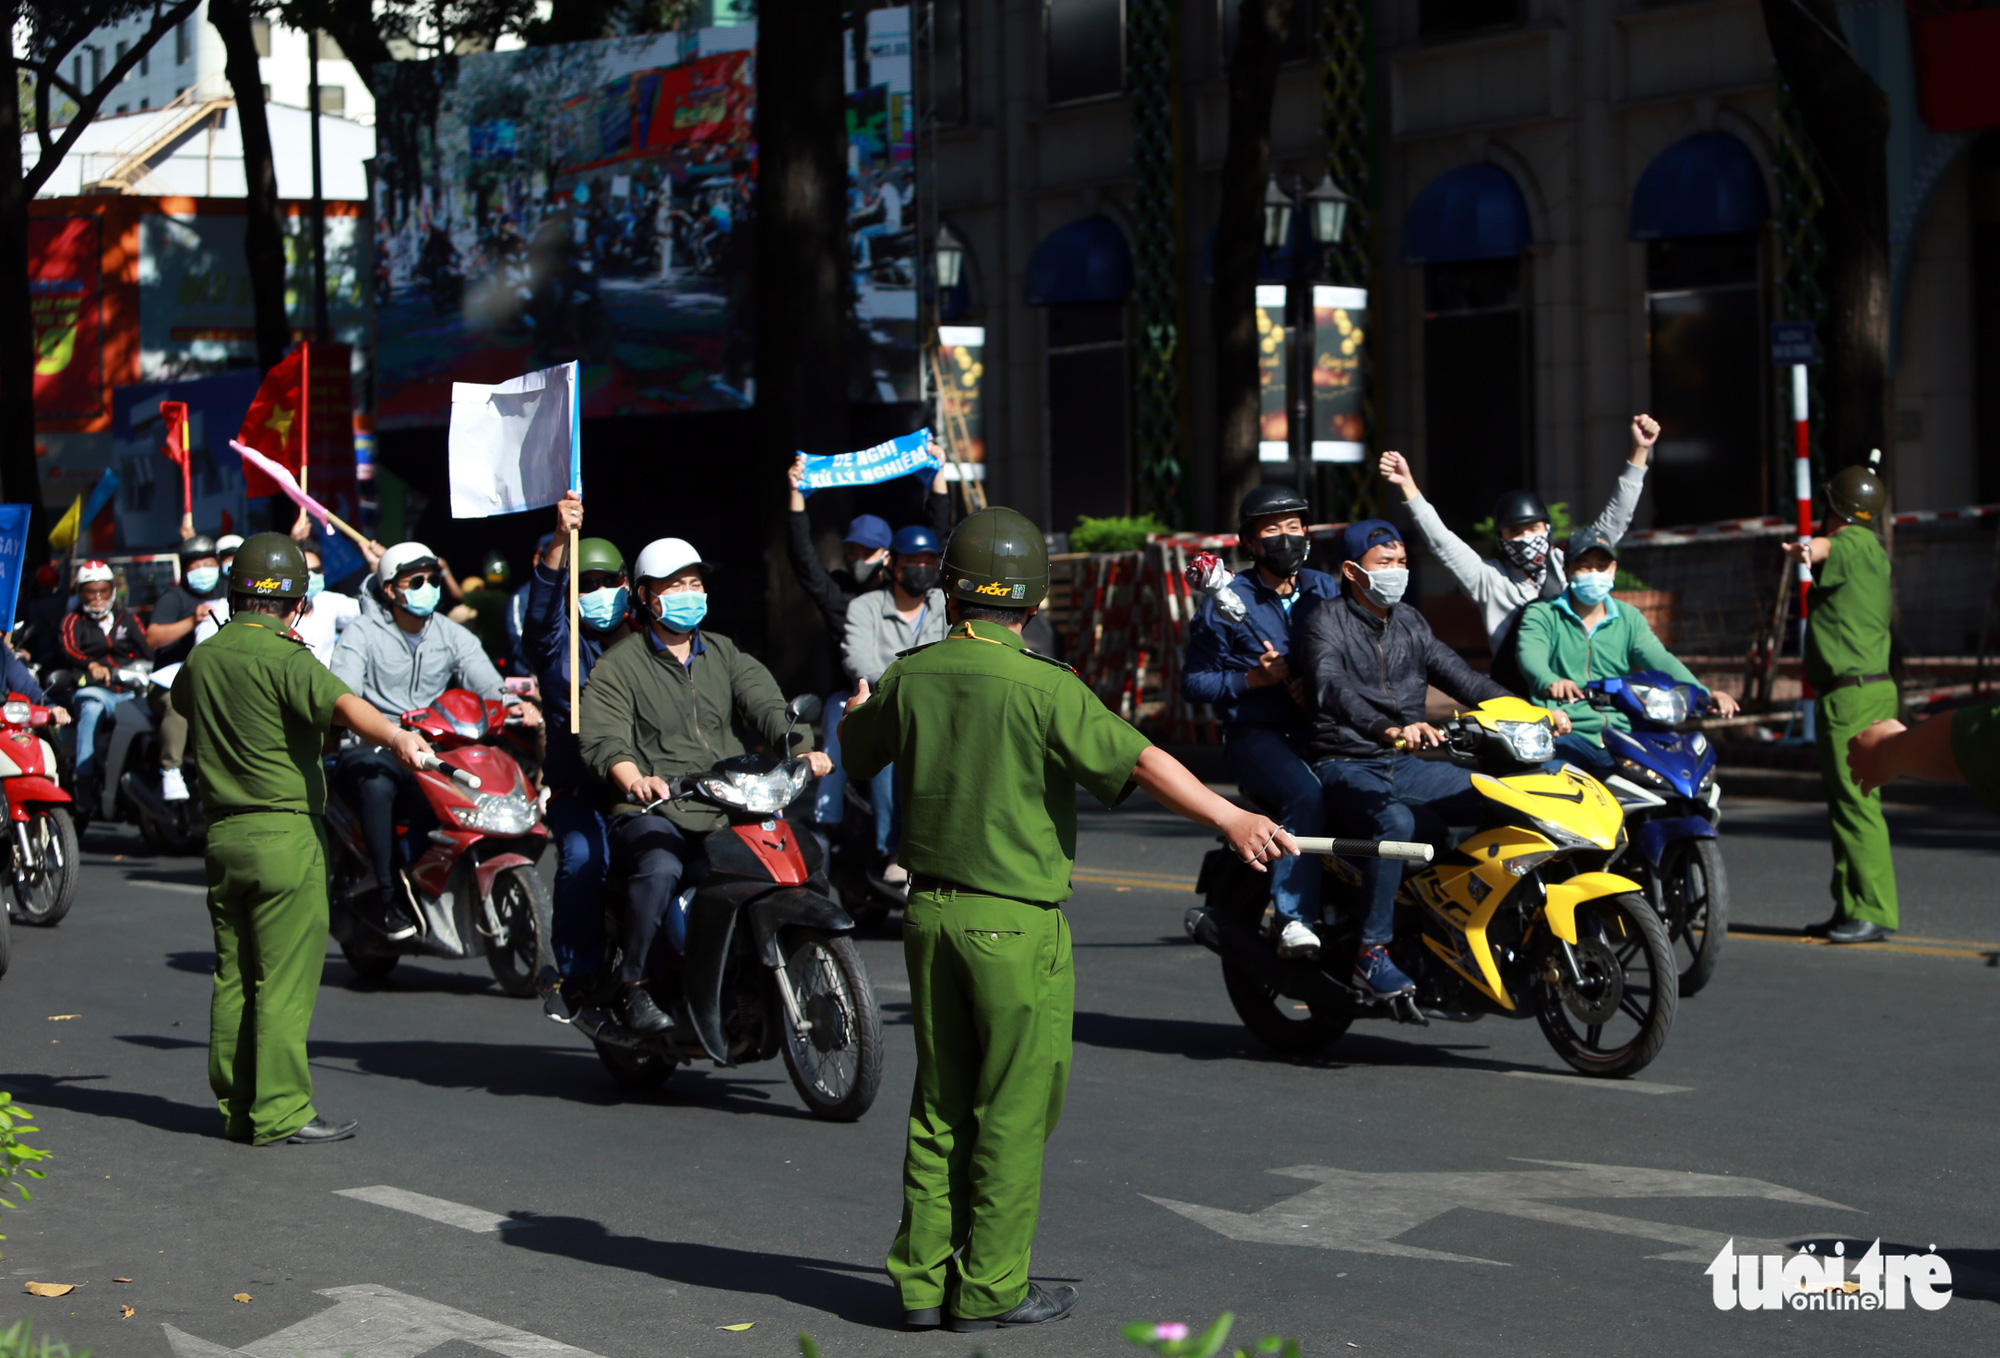 A group of people ride their motorcycles and stir up disorder on the streets.